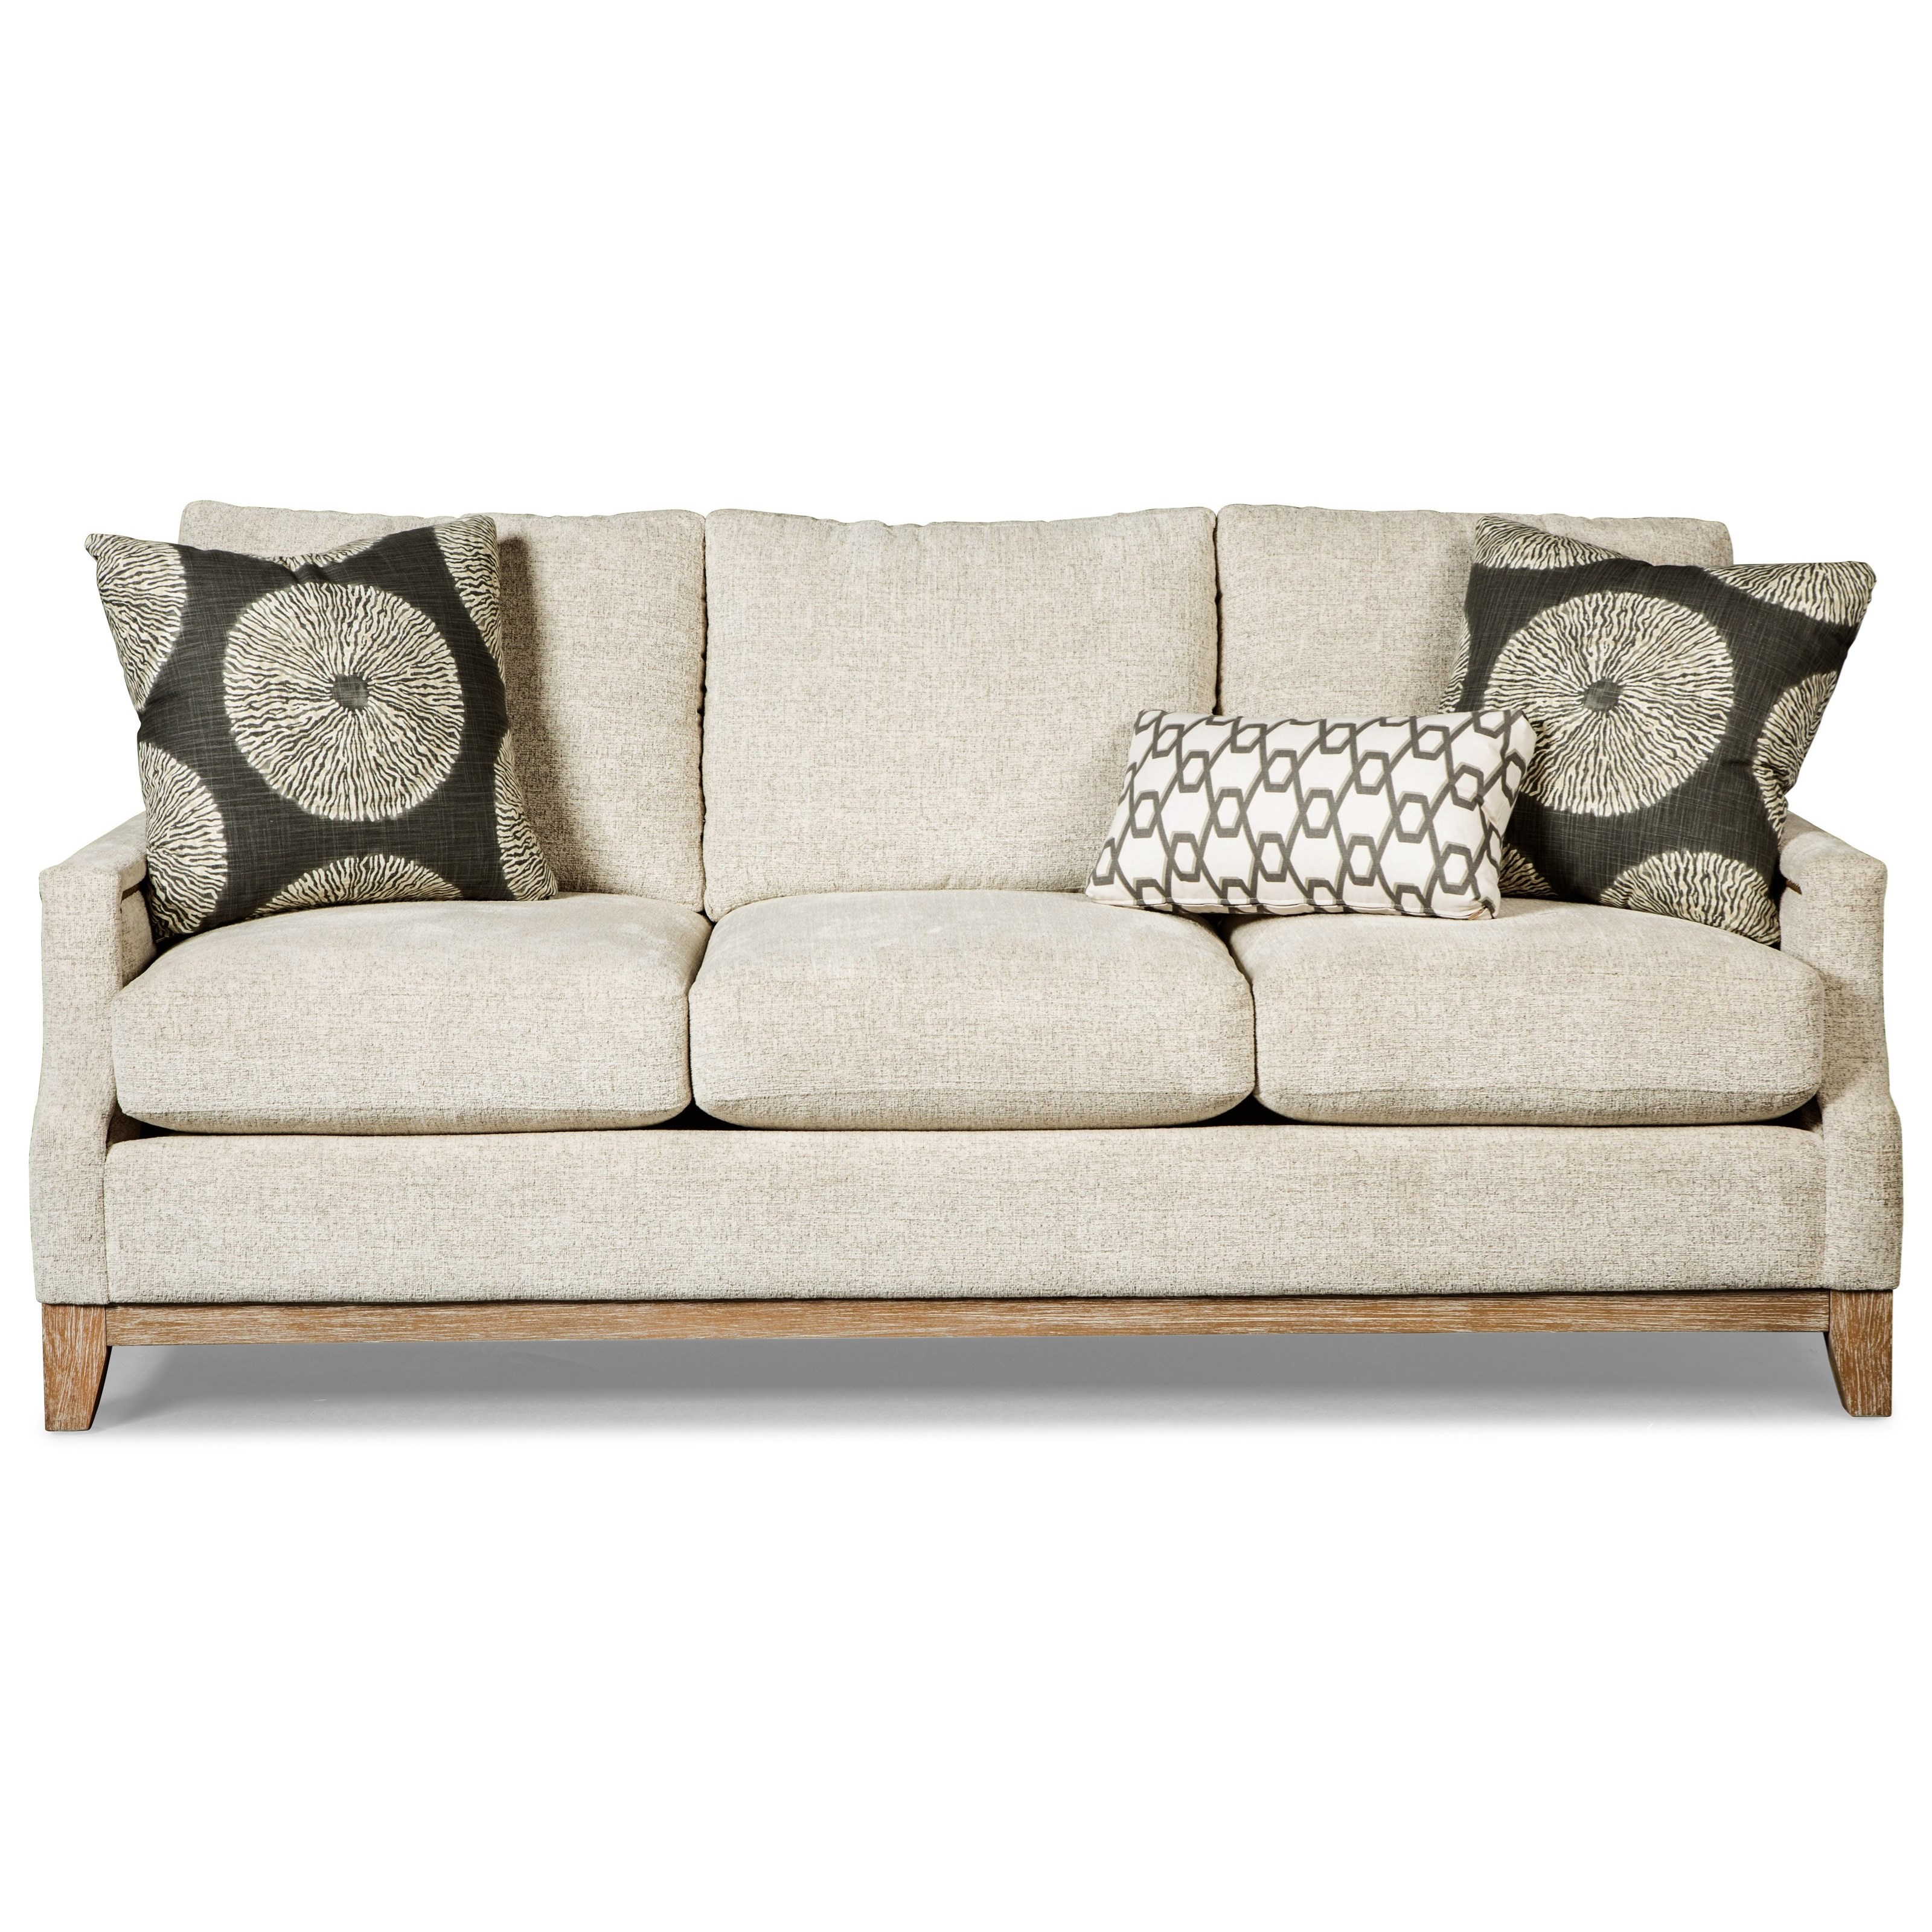 Vintage Sofa with Weathered Oak Rail and Brass Nails by